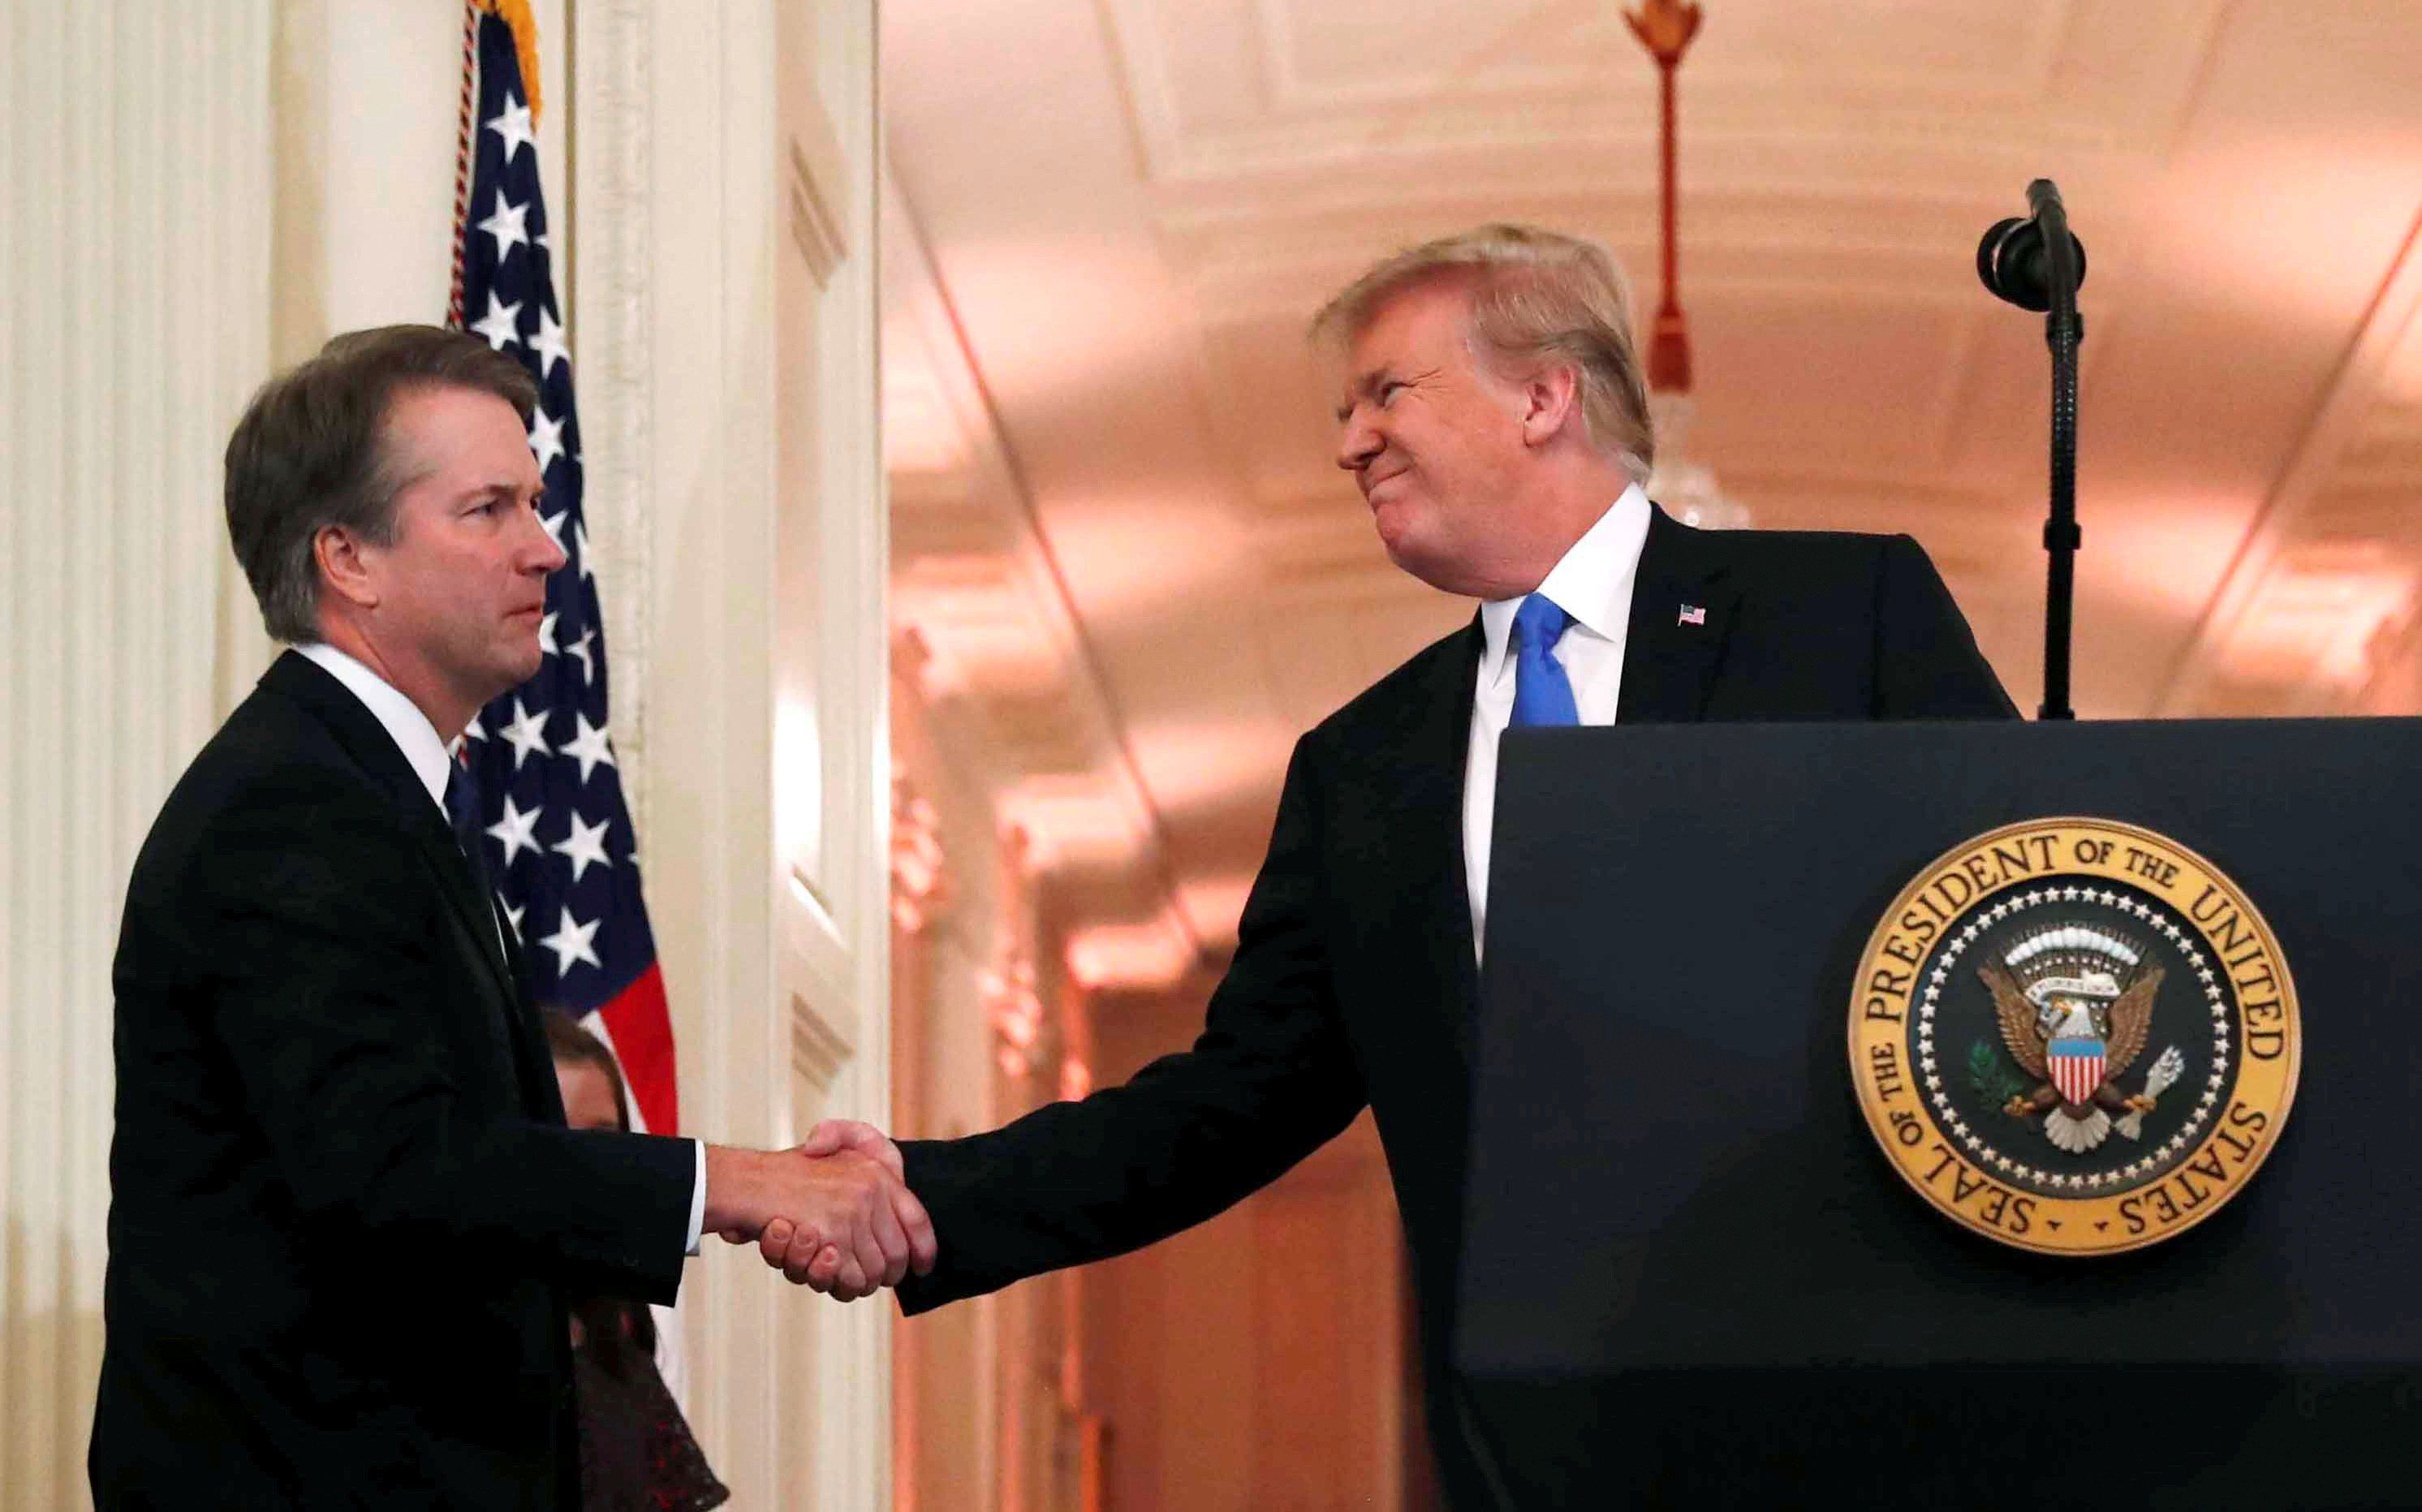 Trump Nominates Brett Kavanaugh For Supreme Court In Bid To Entrench Conservative